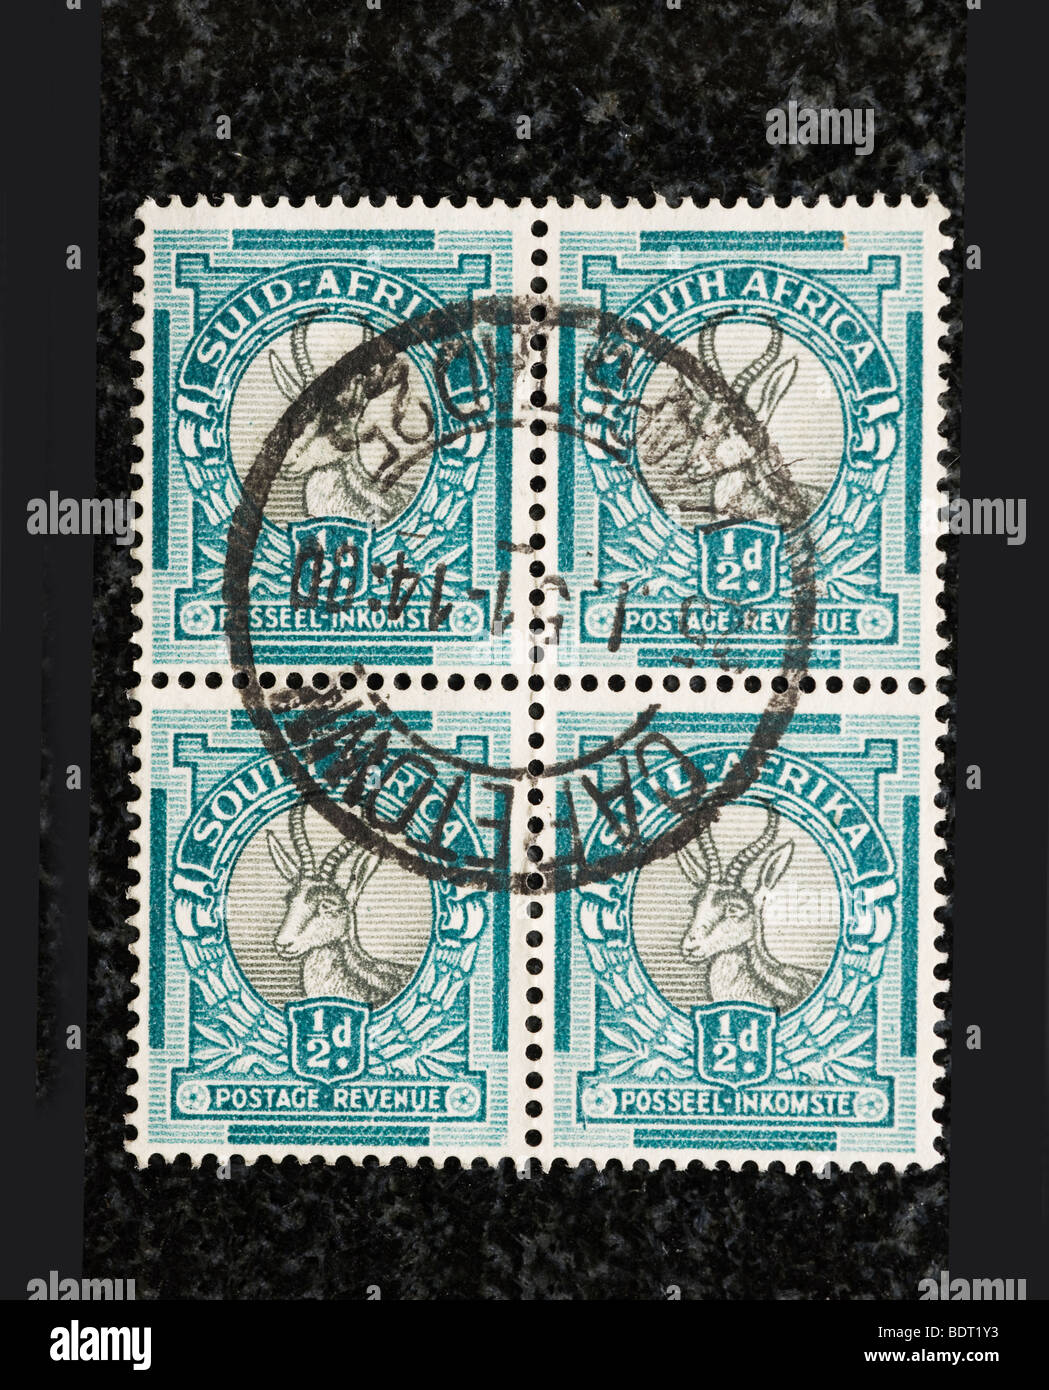 Block of South Africa postage stamps, Half Penny - Stock Image